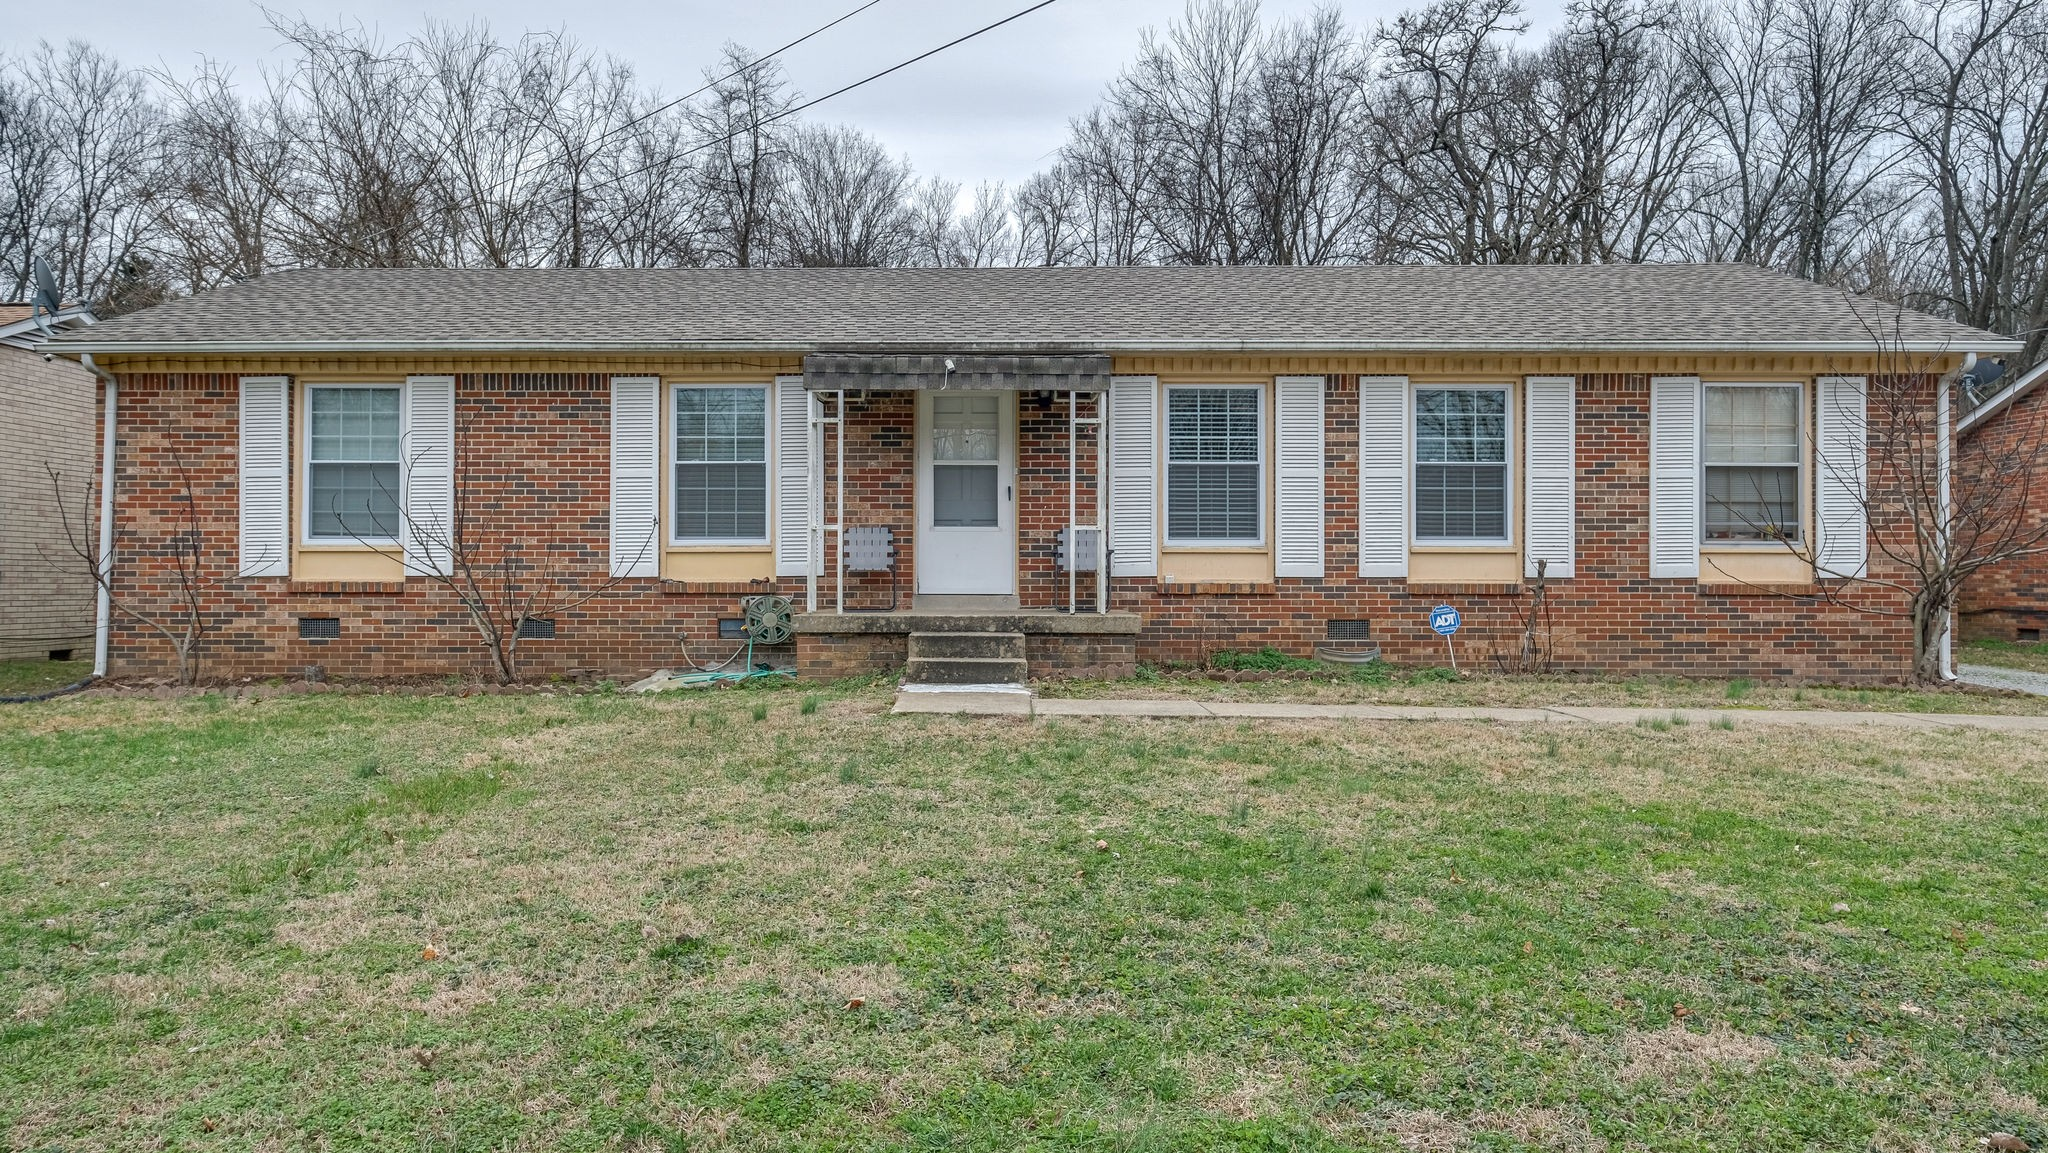 47 Benzing Rd, Nashville-Antioch in Davidson County, TN County, TN 37013 Home for Sale